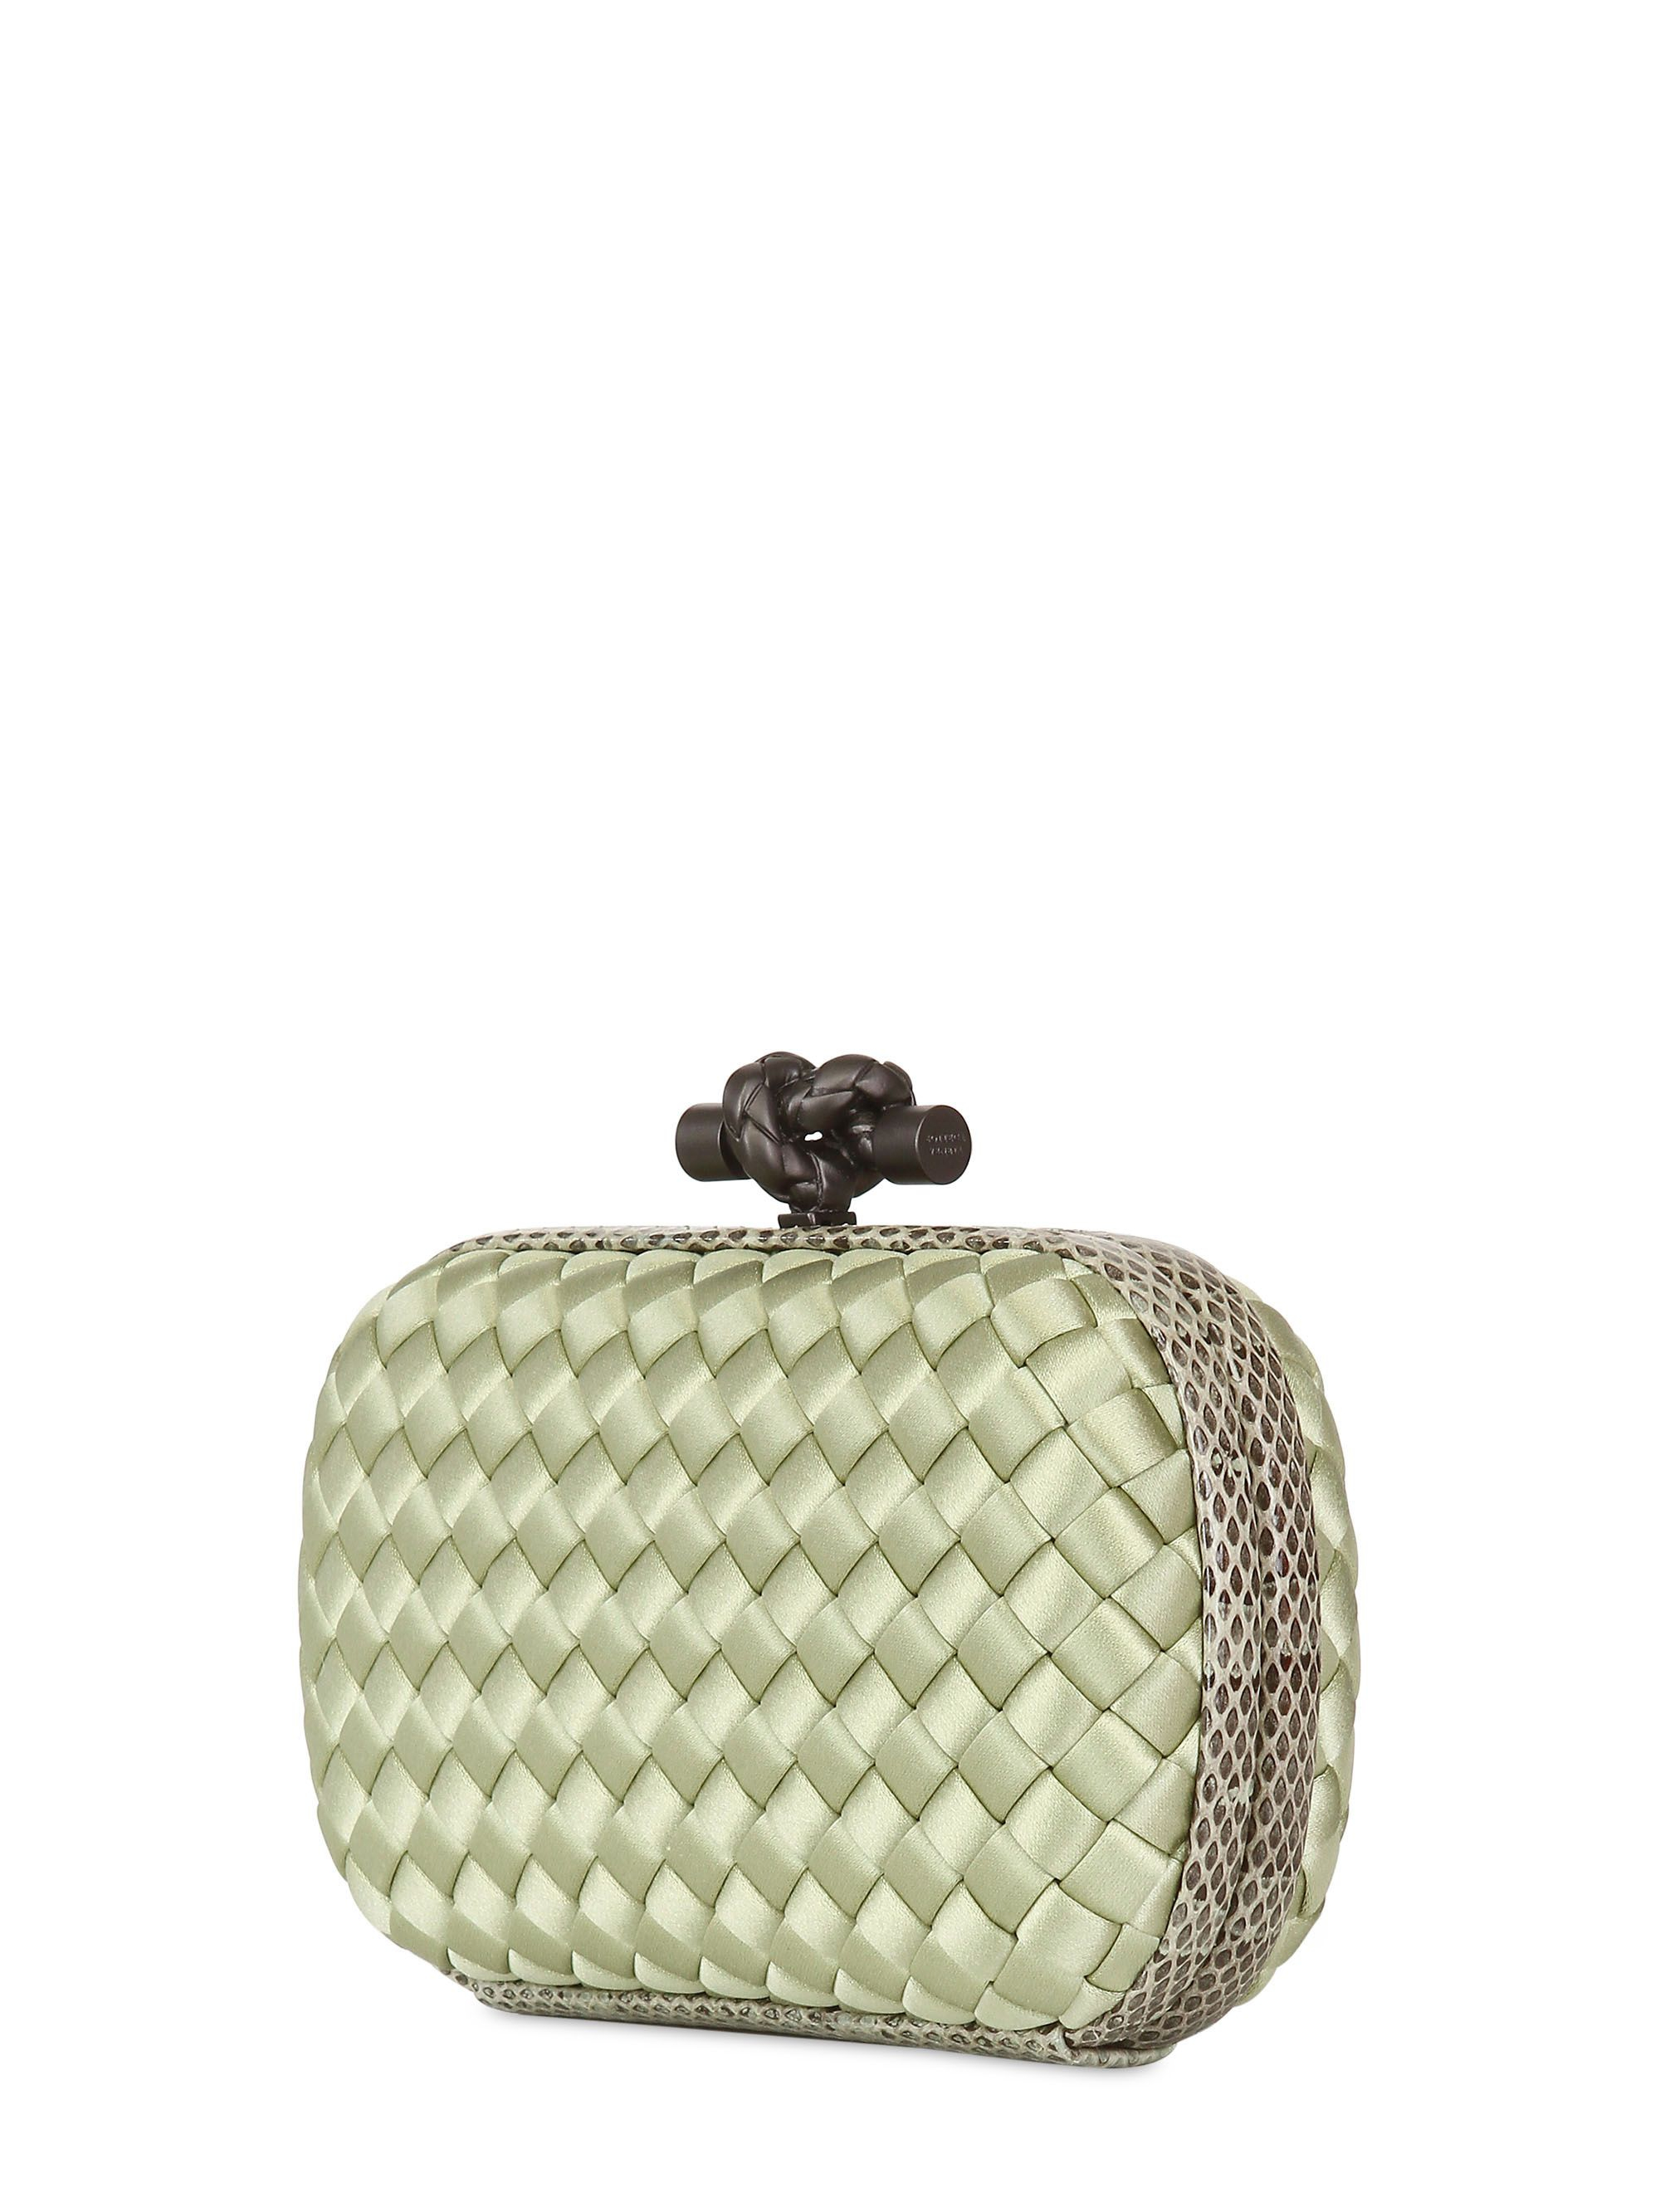 5c68938fd20 Lyst - Bottega Veneta Knot Intreccio Satin And Ayers Clutch in Green